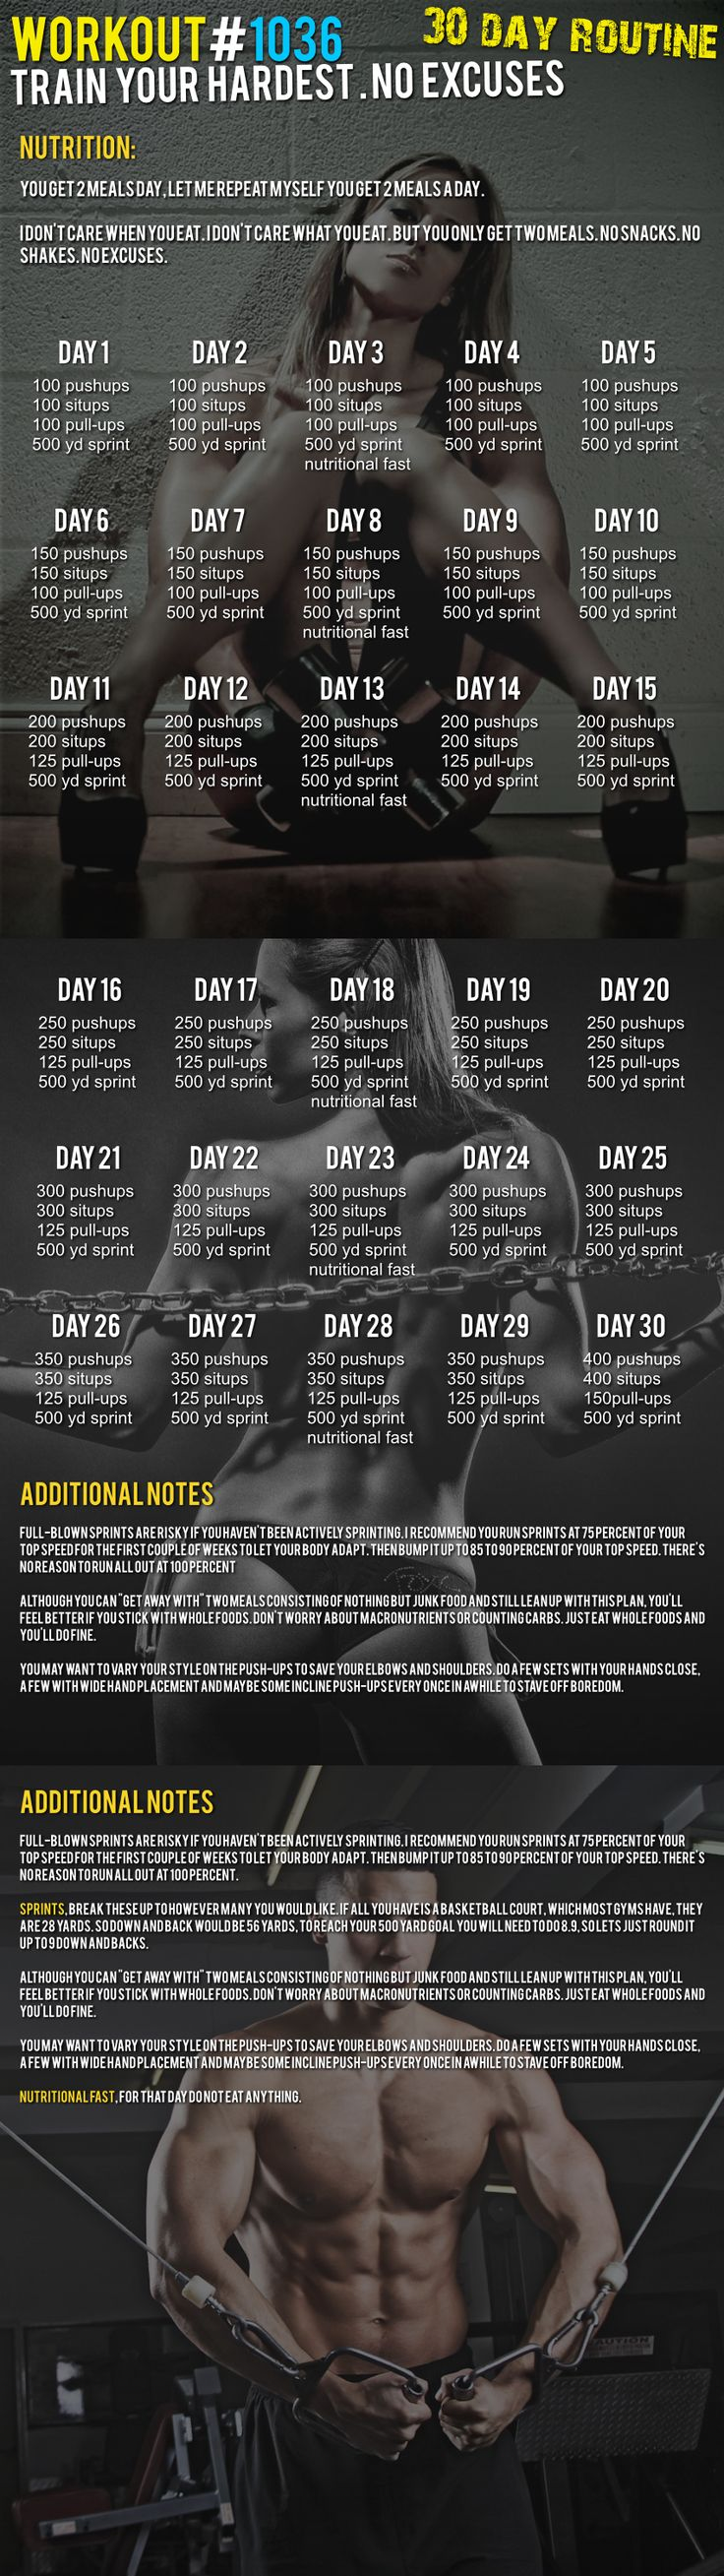 here is a pull-up 30 day challenge .. this is NOT FOR beginners !!!! You have to be strict on yourself ... NO EXCUSES !!!!